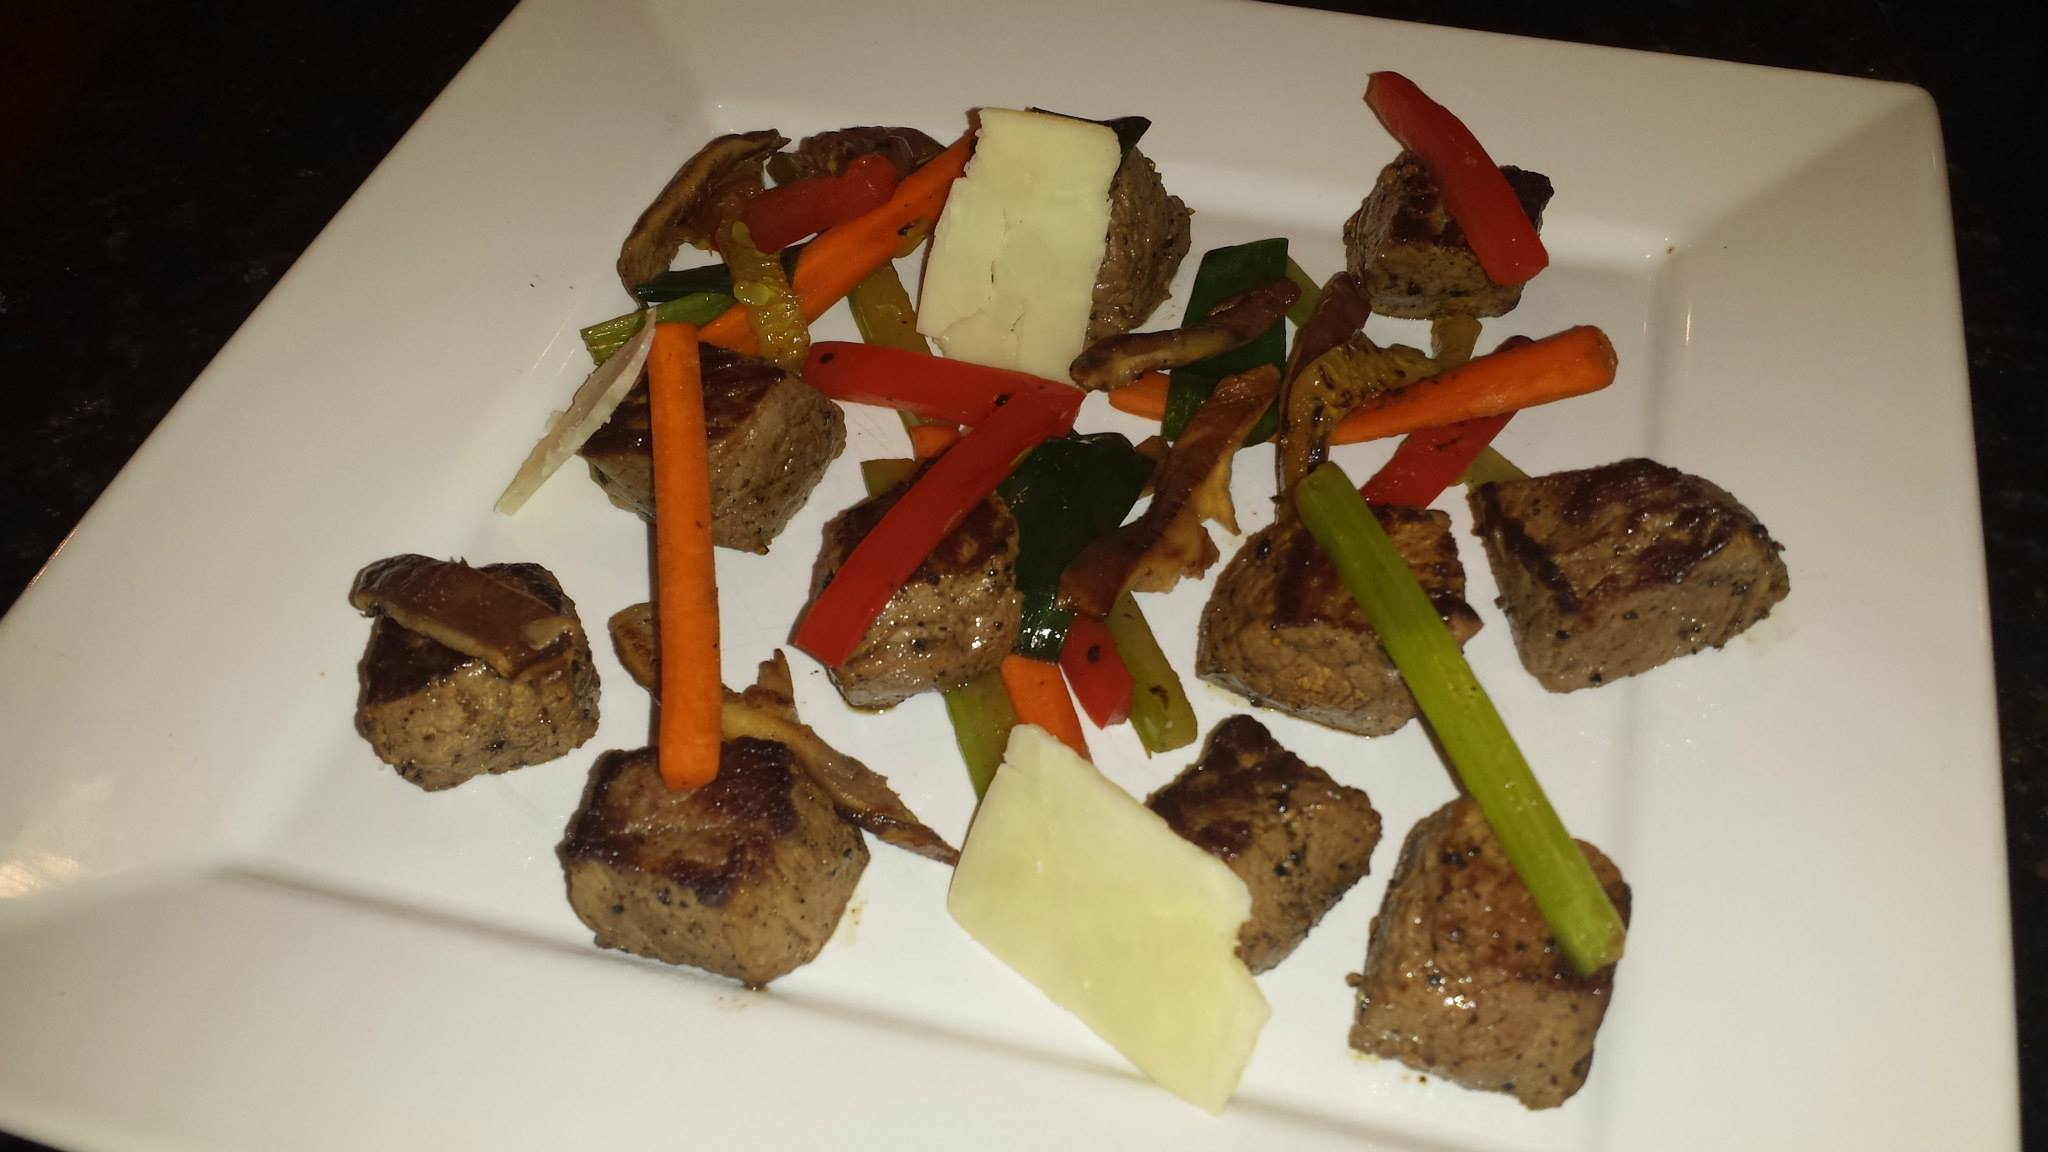 Recipe: Steak, cheese, and vegetables